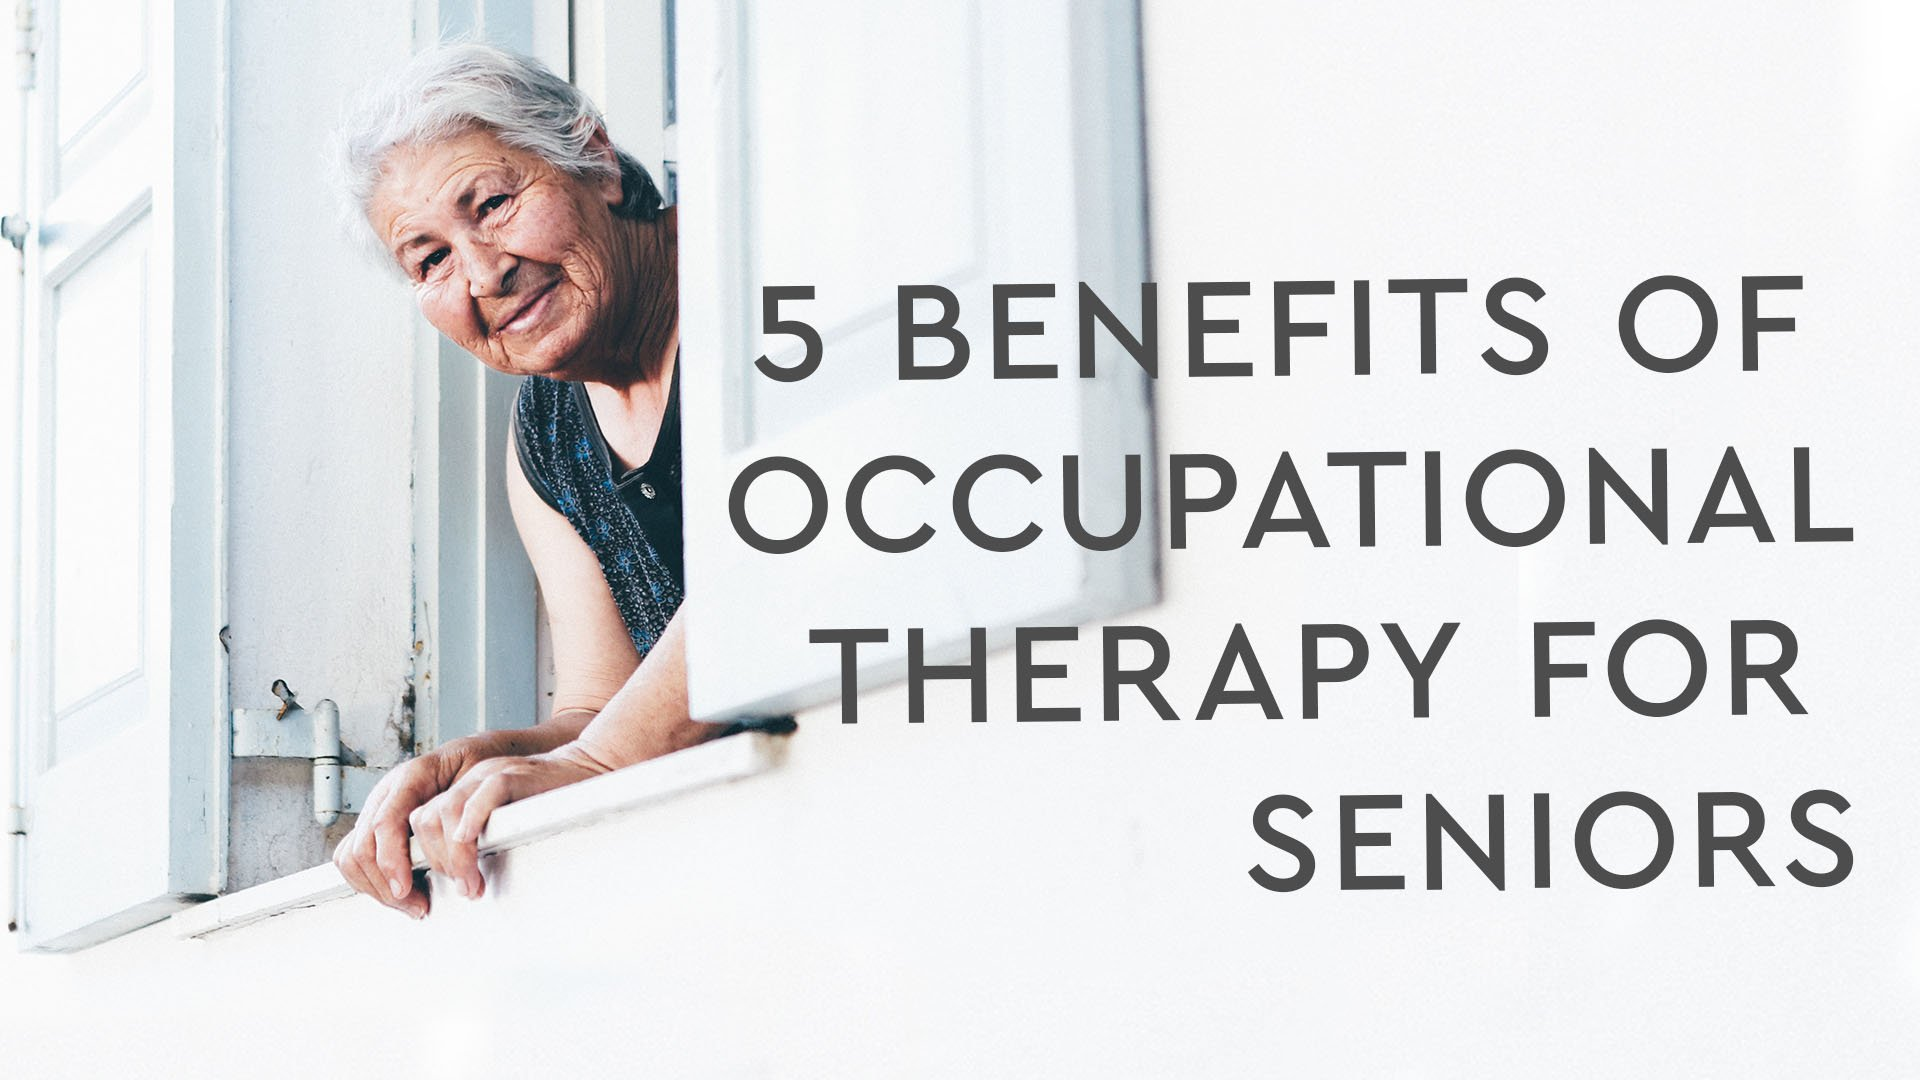 5 Benefits Of Occupational Therapy For Seniors